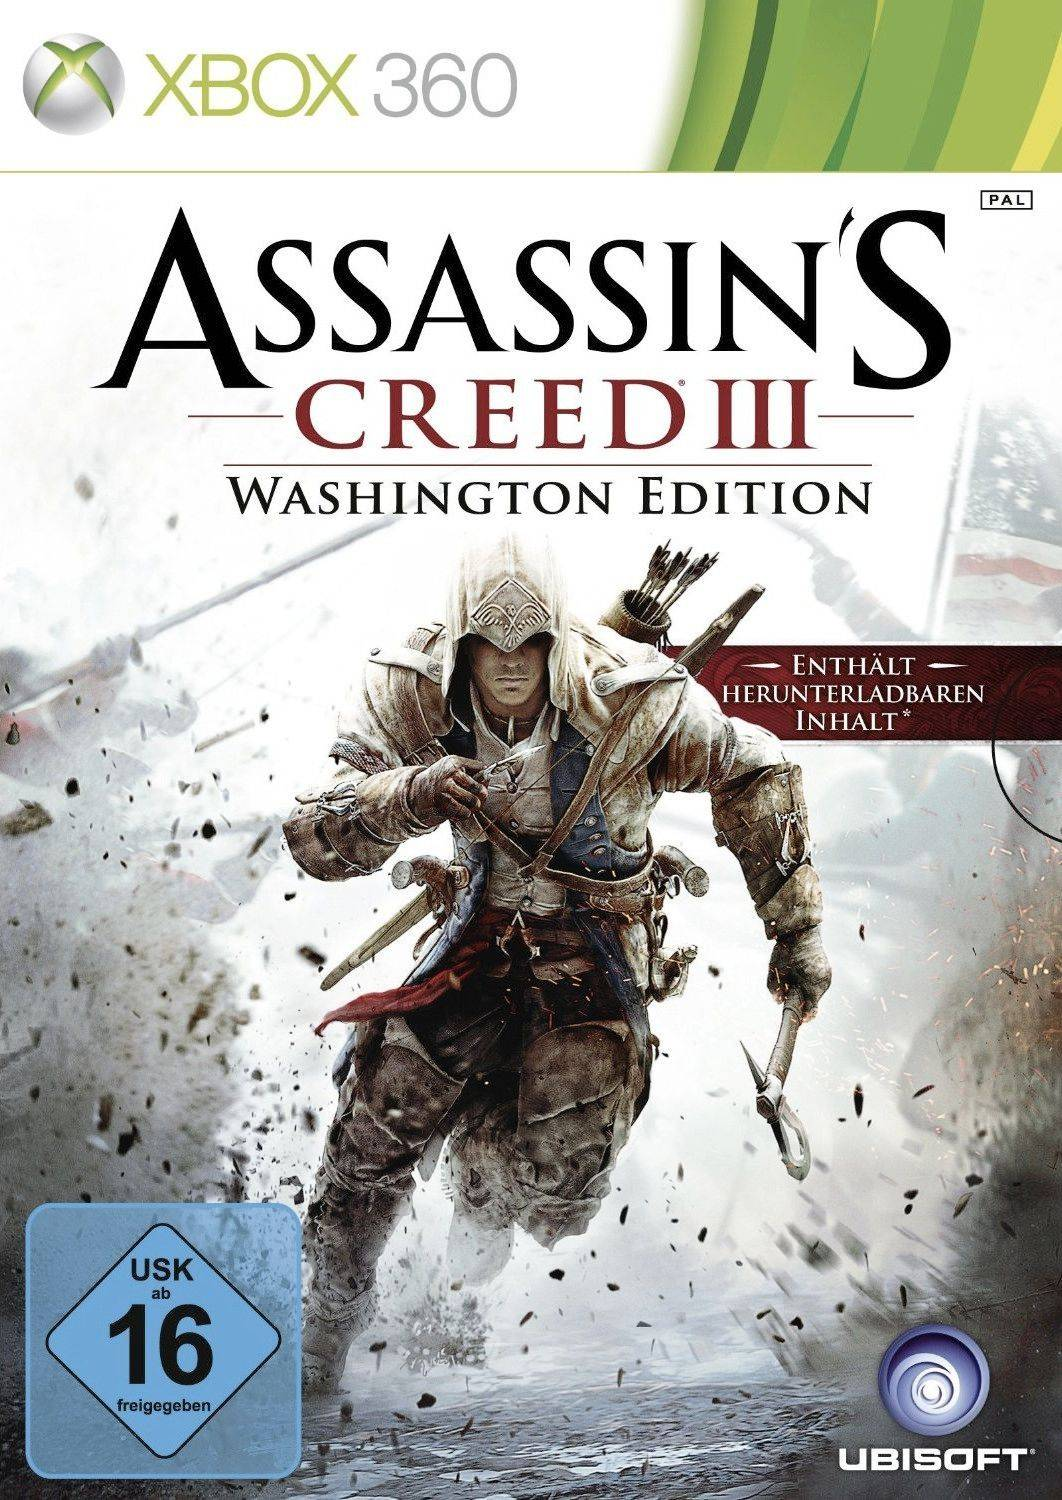 Assassin's Creed 3 Washington Edition XBOX 360